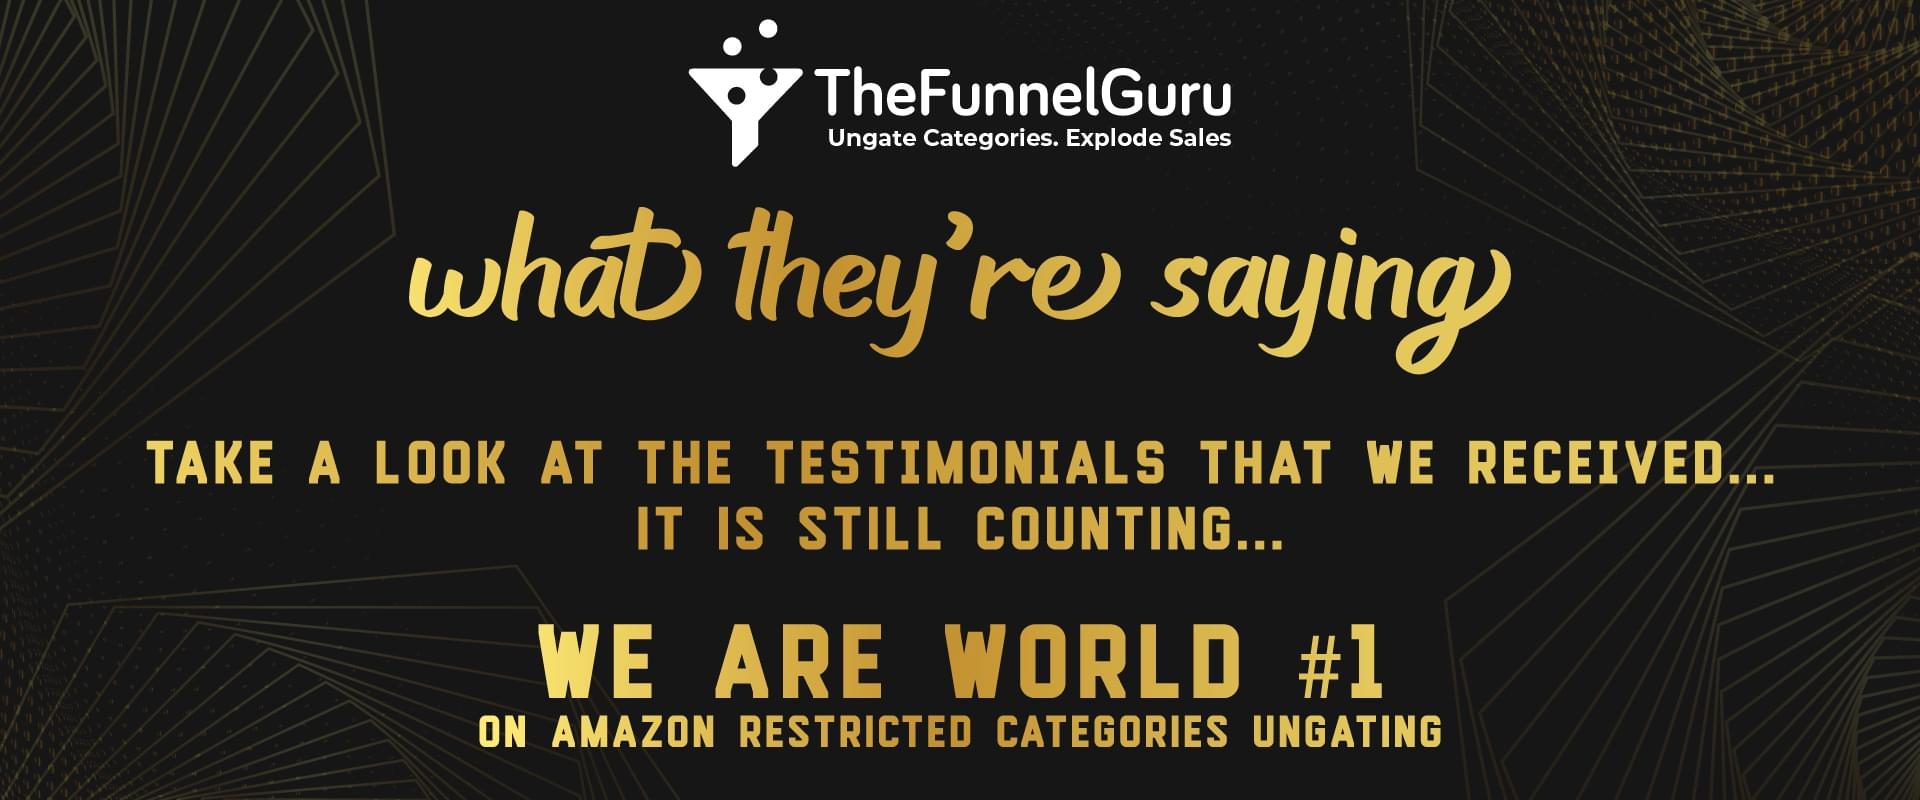 The funnel guru ungating services on amazon